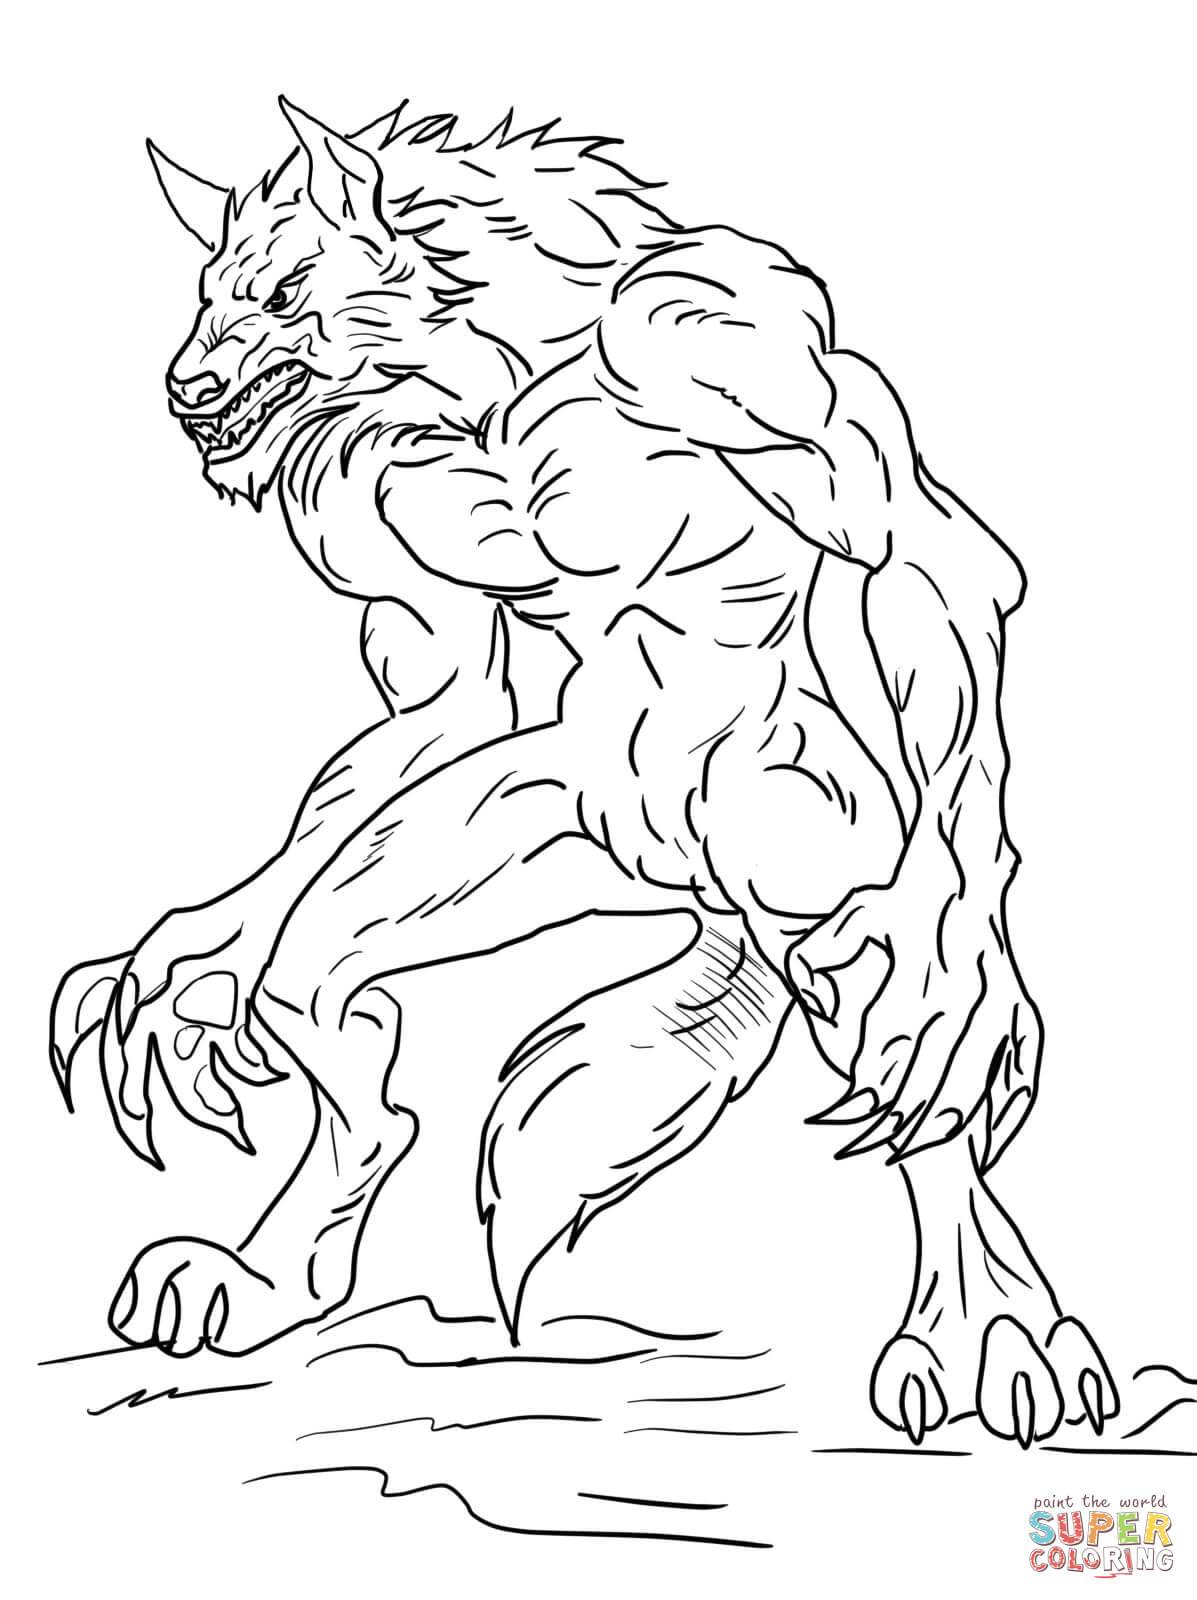 Ben 10 Werewolf From Ben 10 Coloring Page